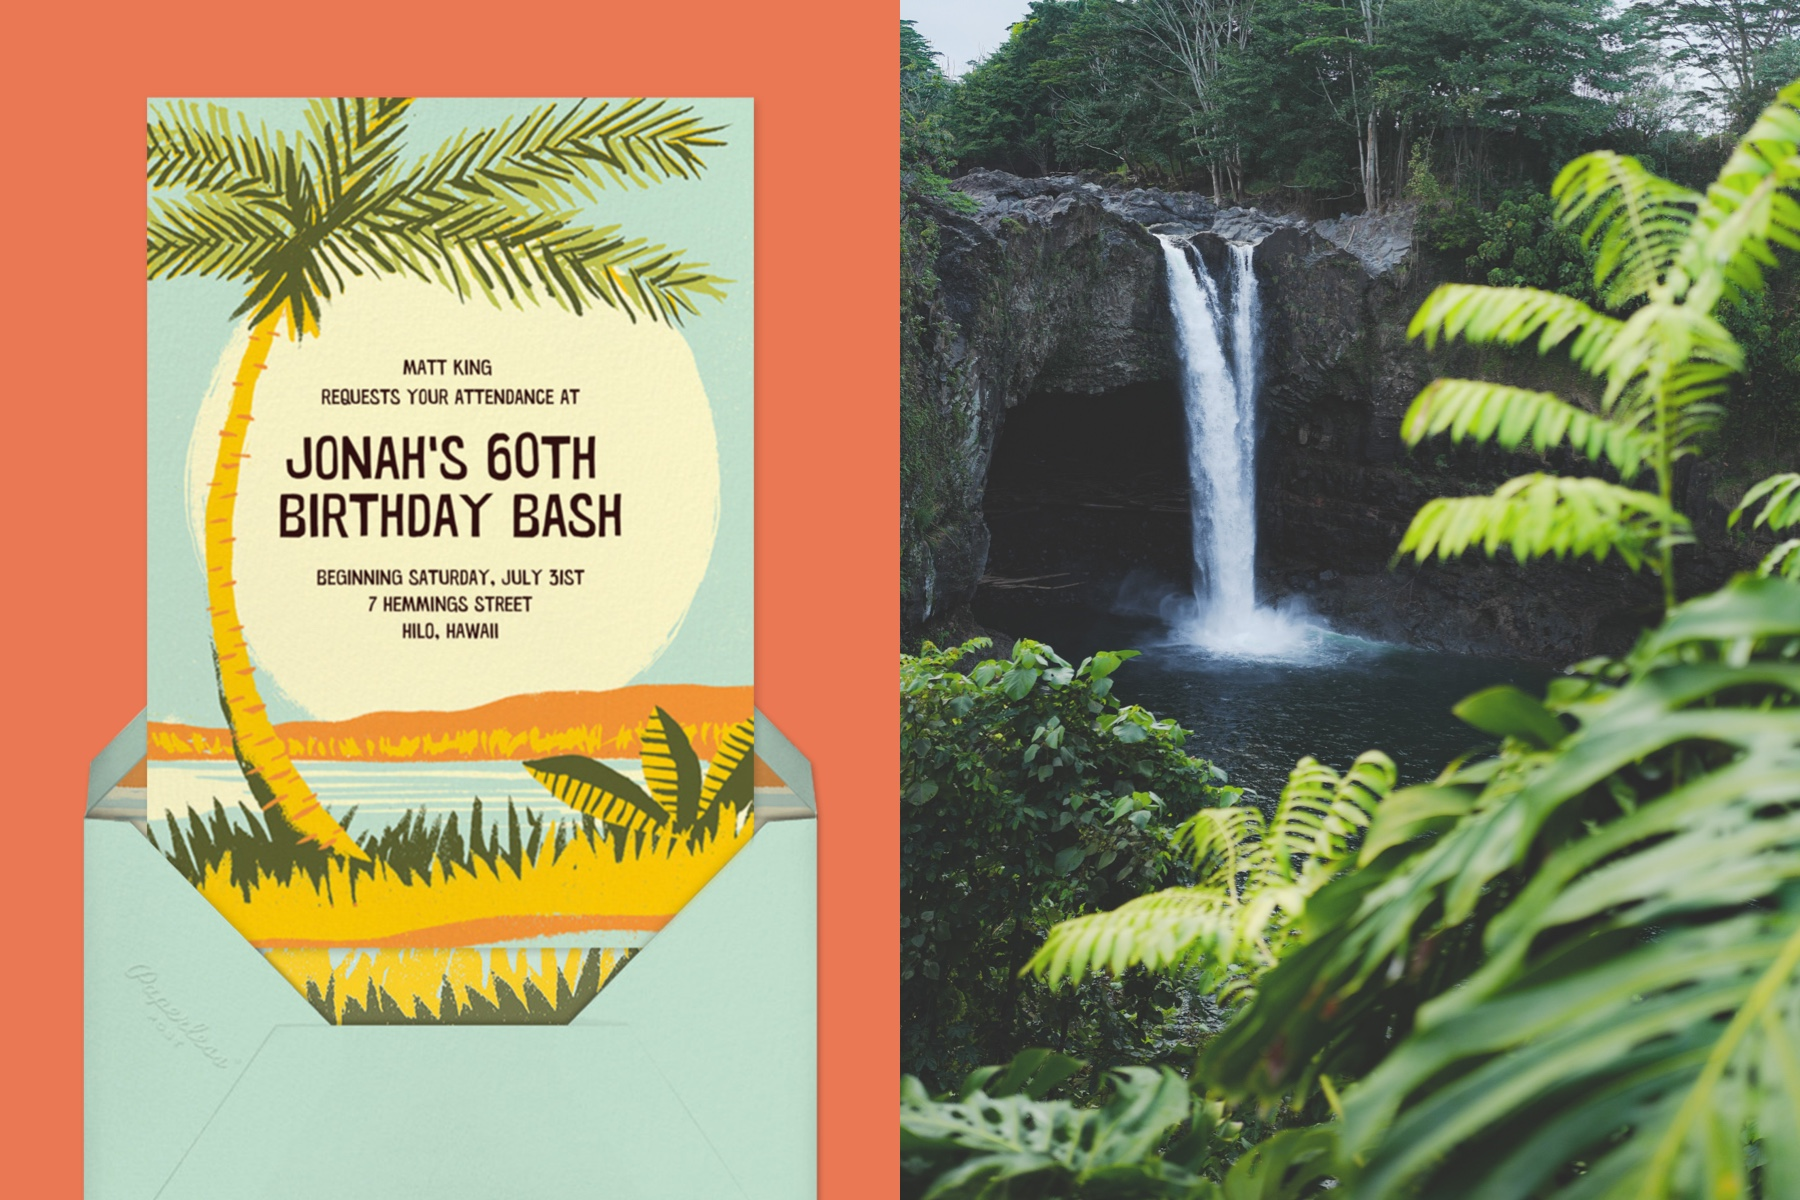 """Left: """"Seaside Sunrise"""" invitation by Paperless Post featuring a palm tree and beach scene on an orange background.   Right: Photo of a lush tropical waterfall."""